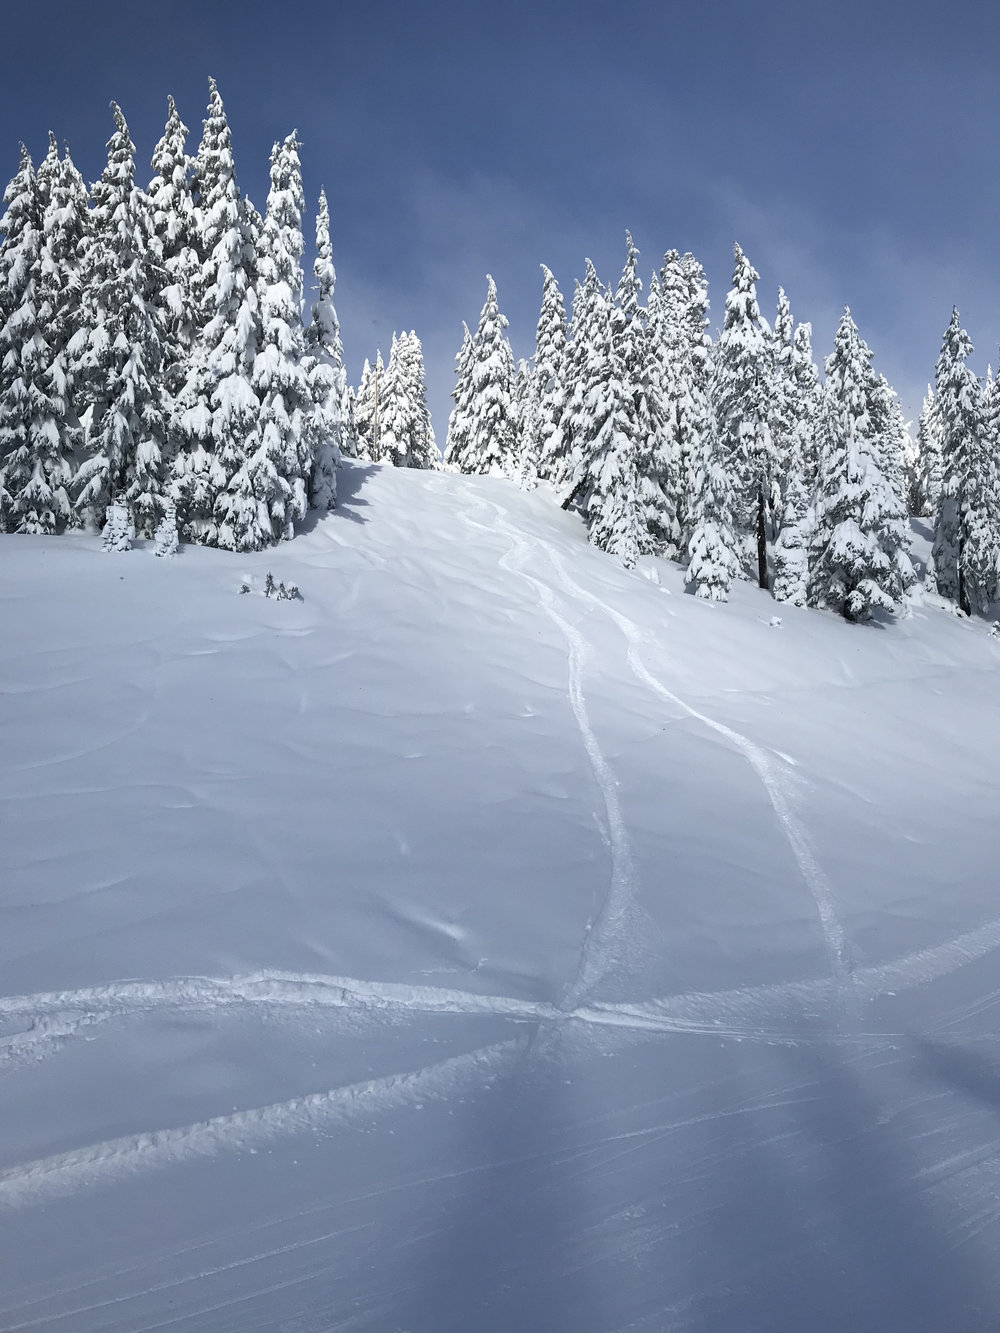 Here is a shot of some tracks a buddy and I laid down on the first run. His ski tracks on the left, my snowboard tracks on the right. Oh to just relive it! Image Courtesy: Dan Meyers